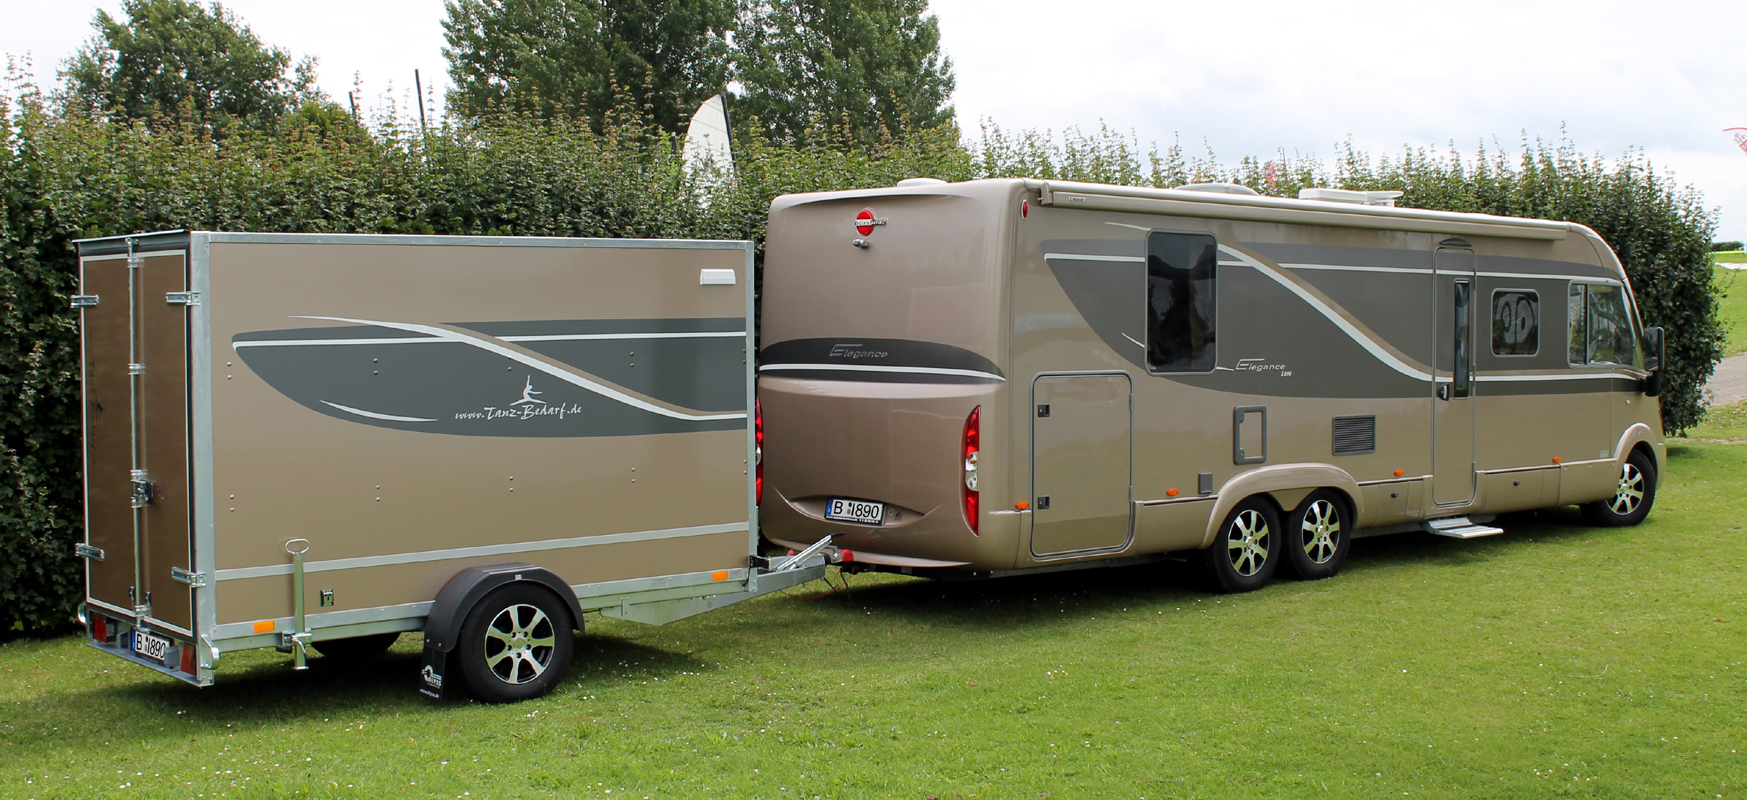 alloyrim camper fiat ducato 15 inch campermobil alloywheel. Black Bedroom Furniture Sets. Home Design Ideas